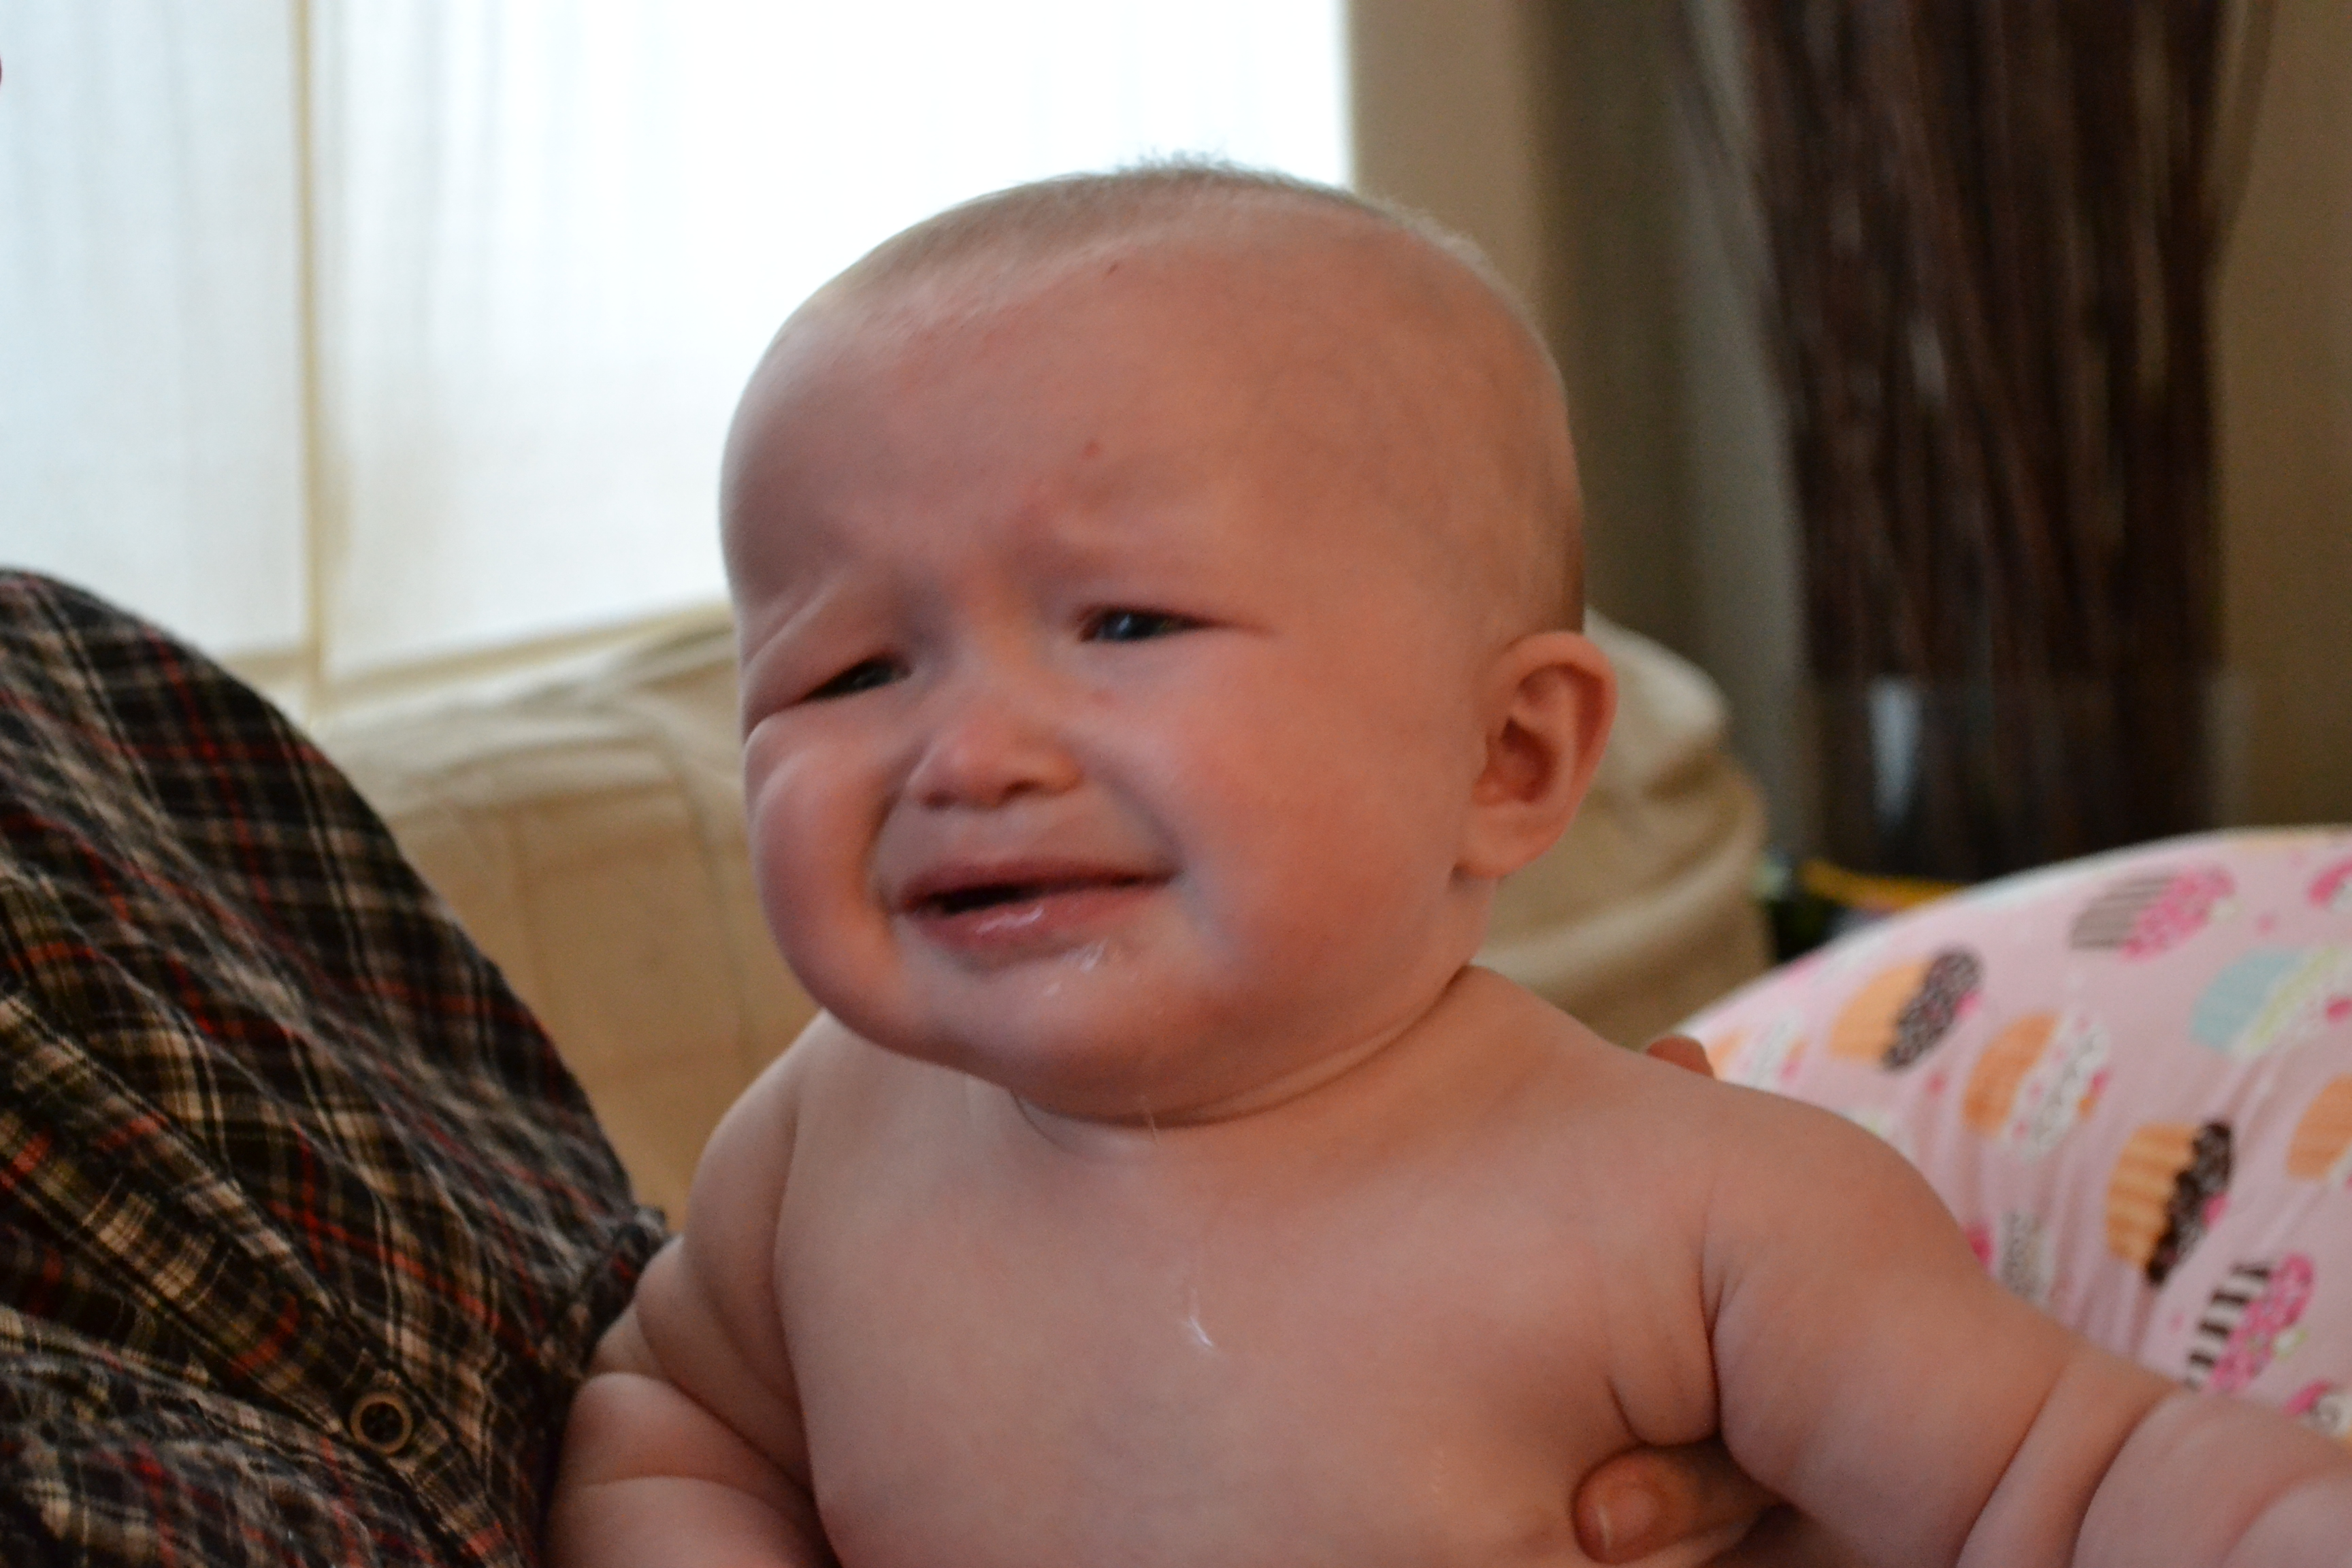 angry baby - photo #19